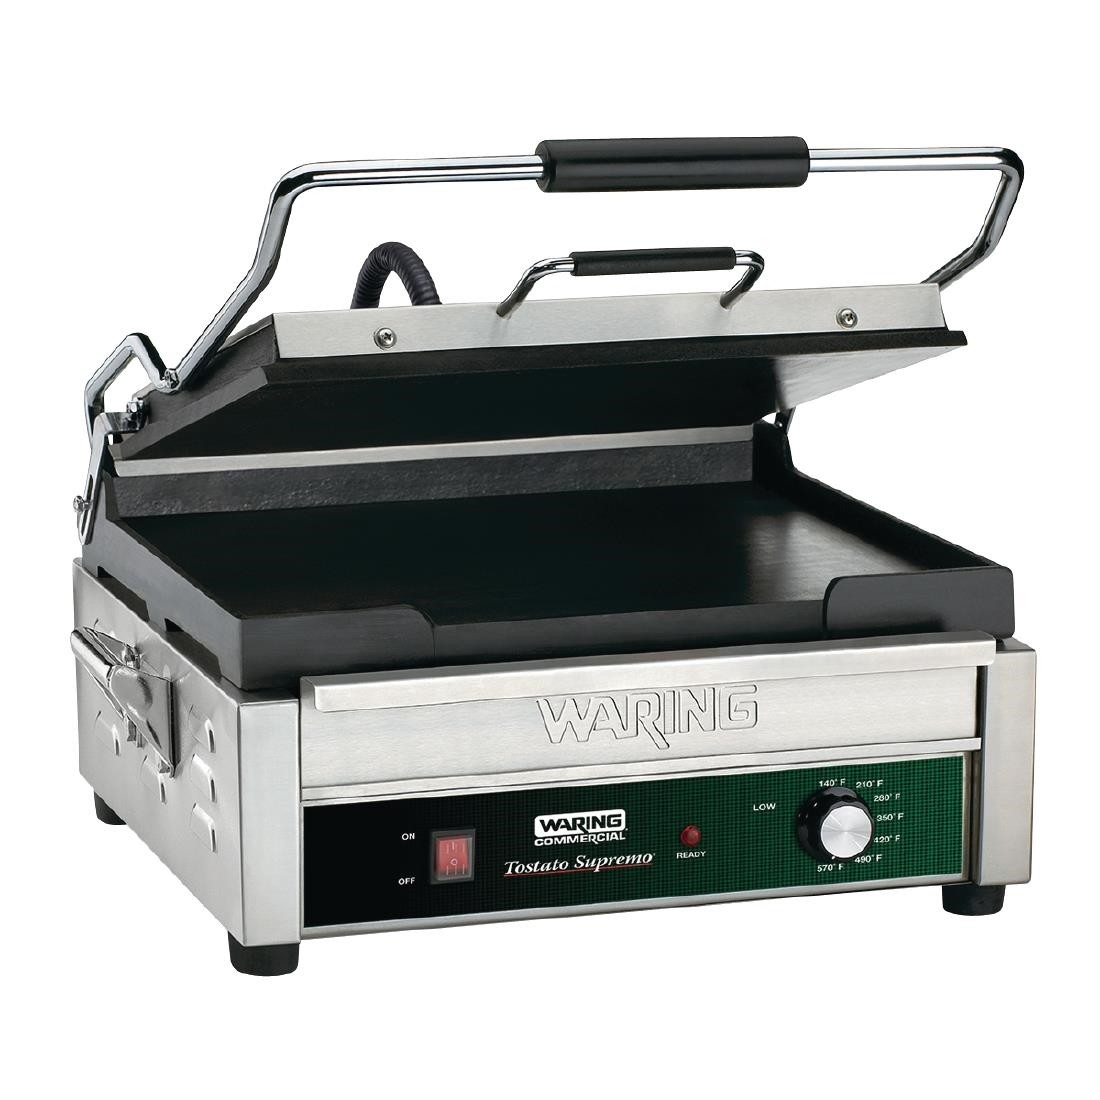 Waring GH482 Heavy Duty Single Contact Grill - 440mm